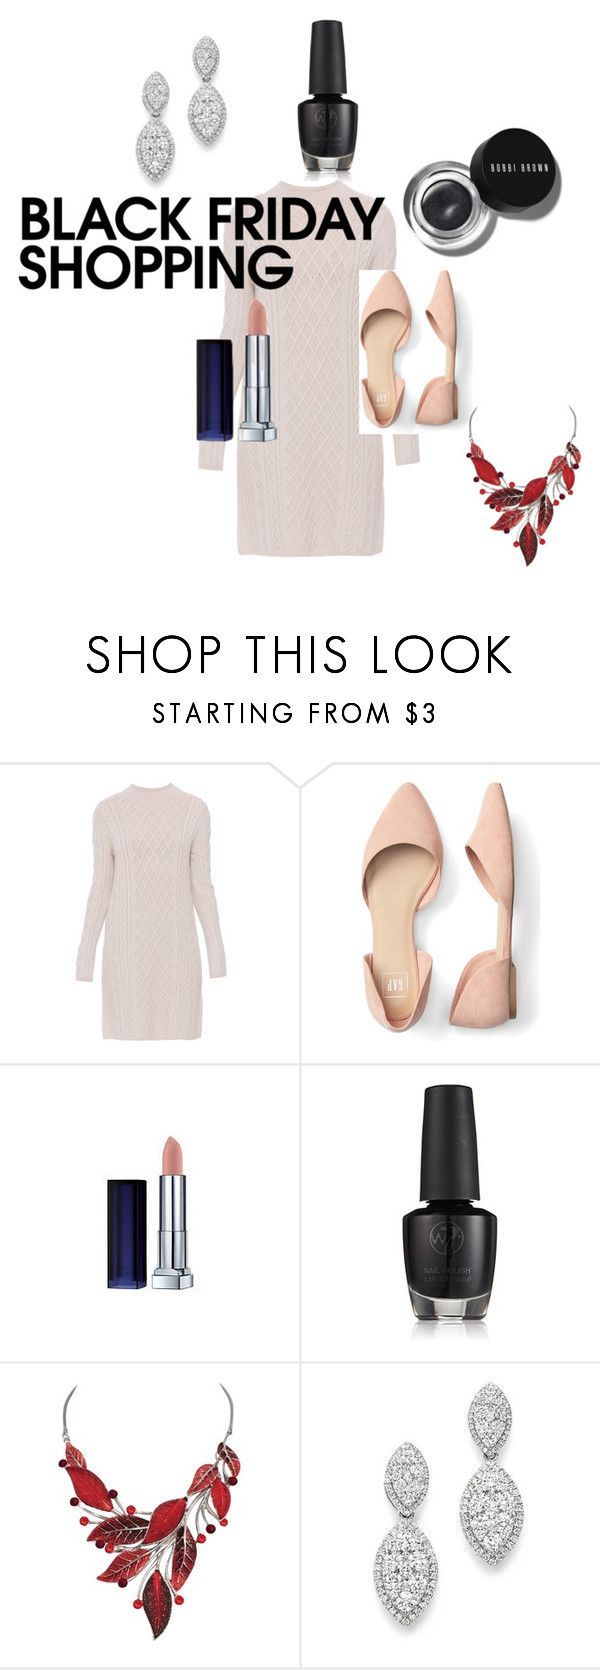 """""""Balck Friday Shopping"""" by katiephan on Polyvore featuring 'S MaxMara, Maybelline, Bobbi Brown Cosmetics, Bloomingdale's and blackfriday"""